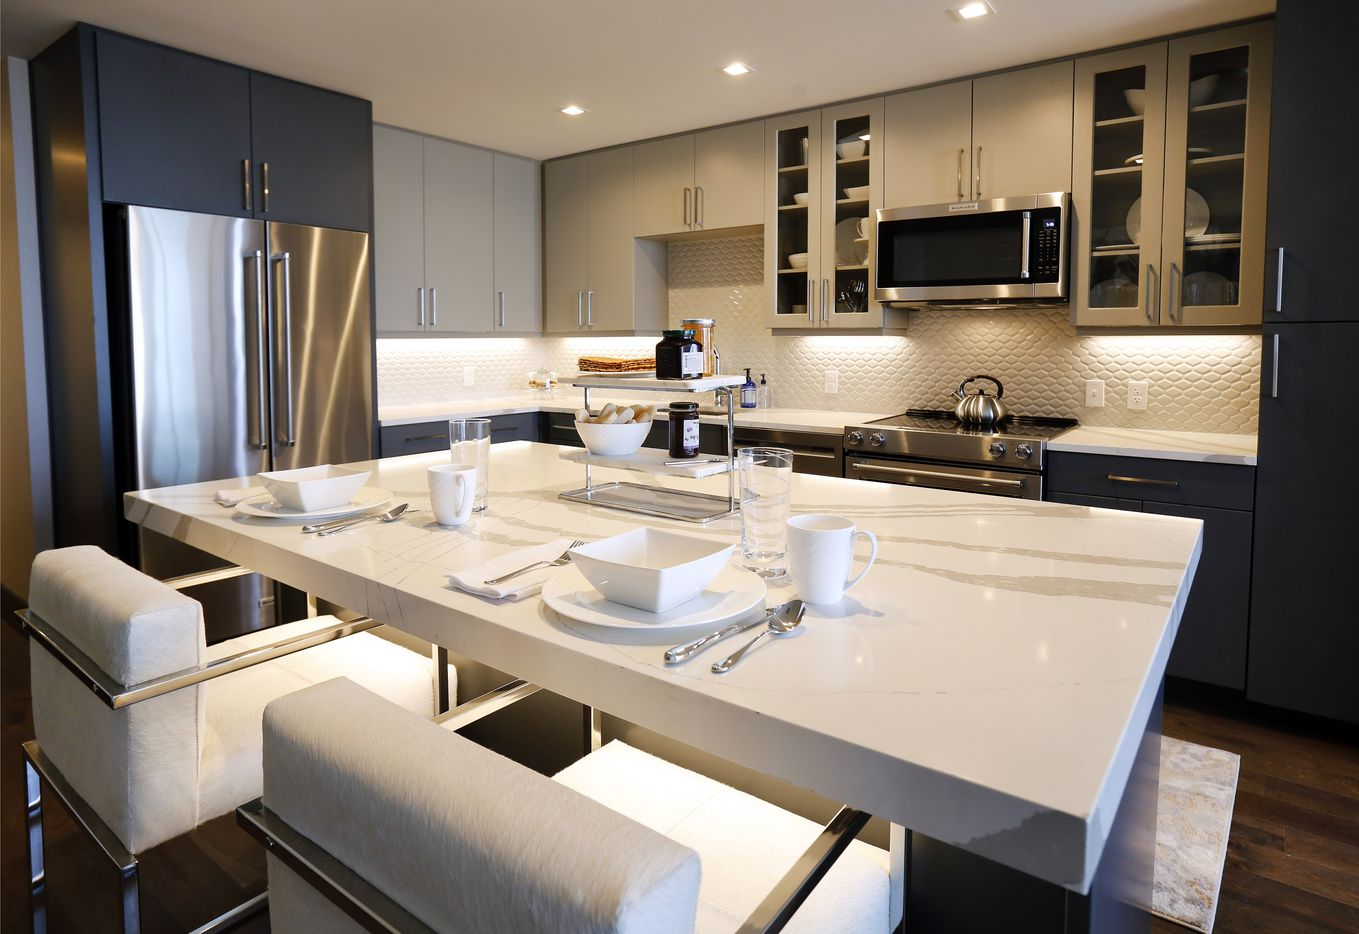 A kitchen in one of the apartments at The National.